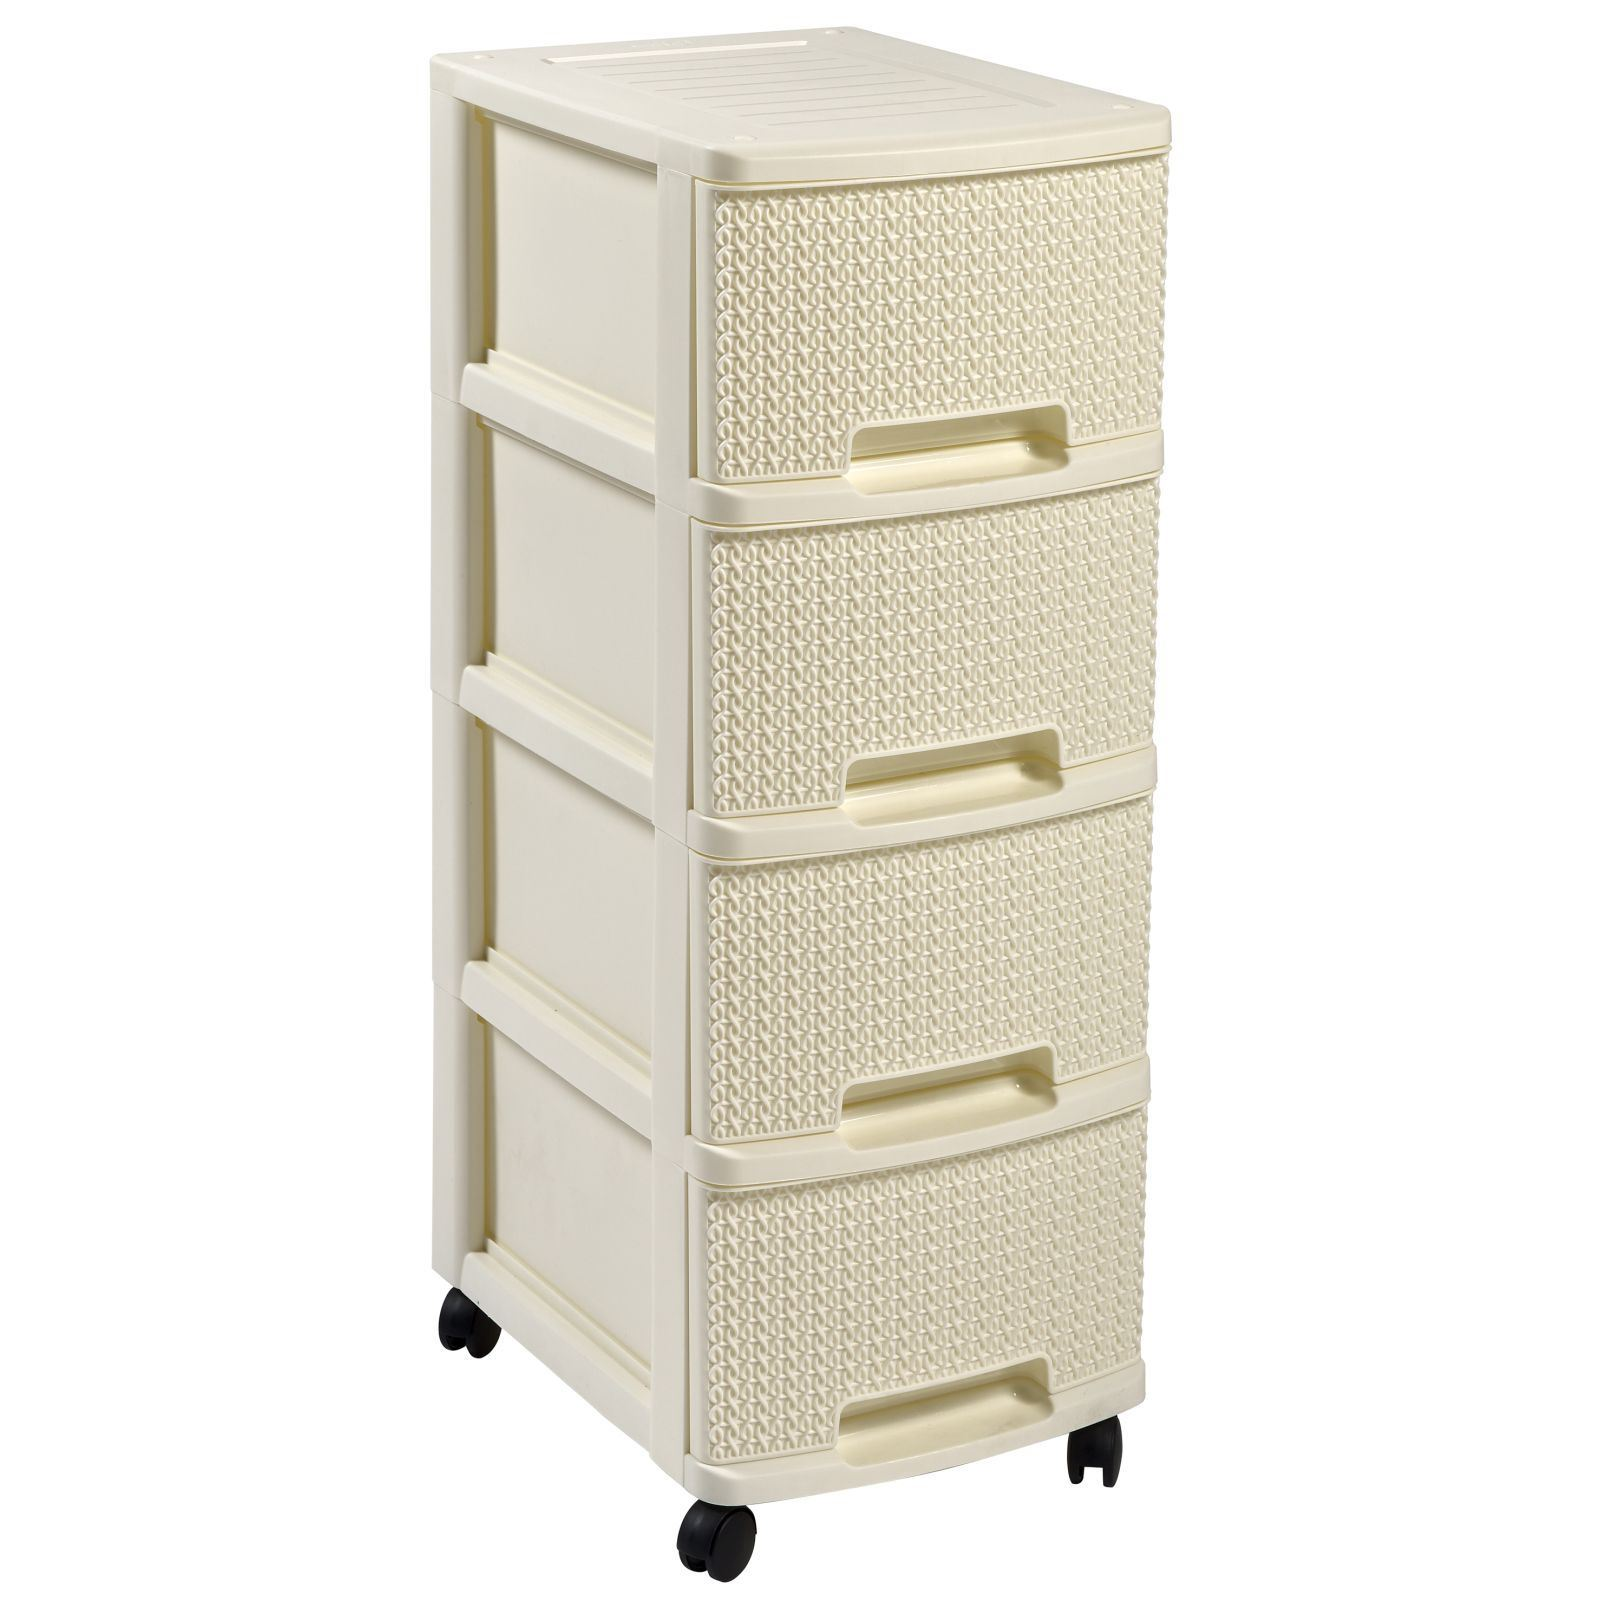 curver tricot tour de rangement 4 tiroirs blanc brandalley. Black Bedroom Furniture Sets. Home Design Ideas